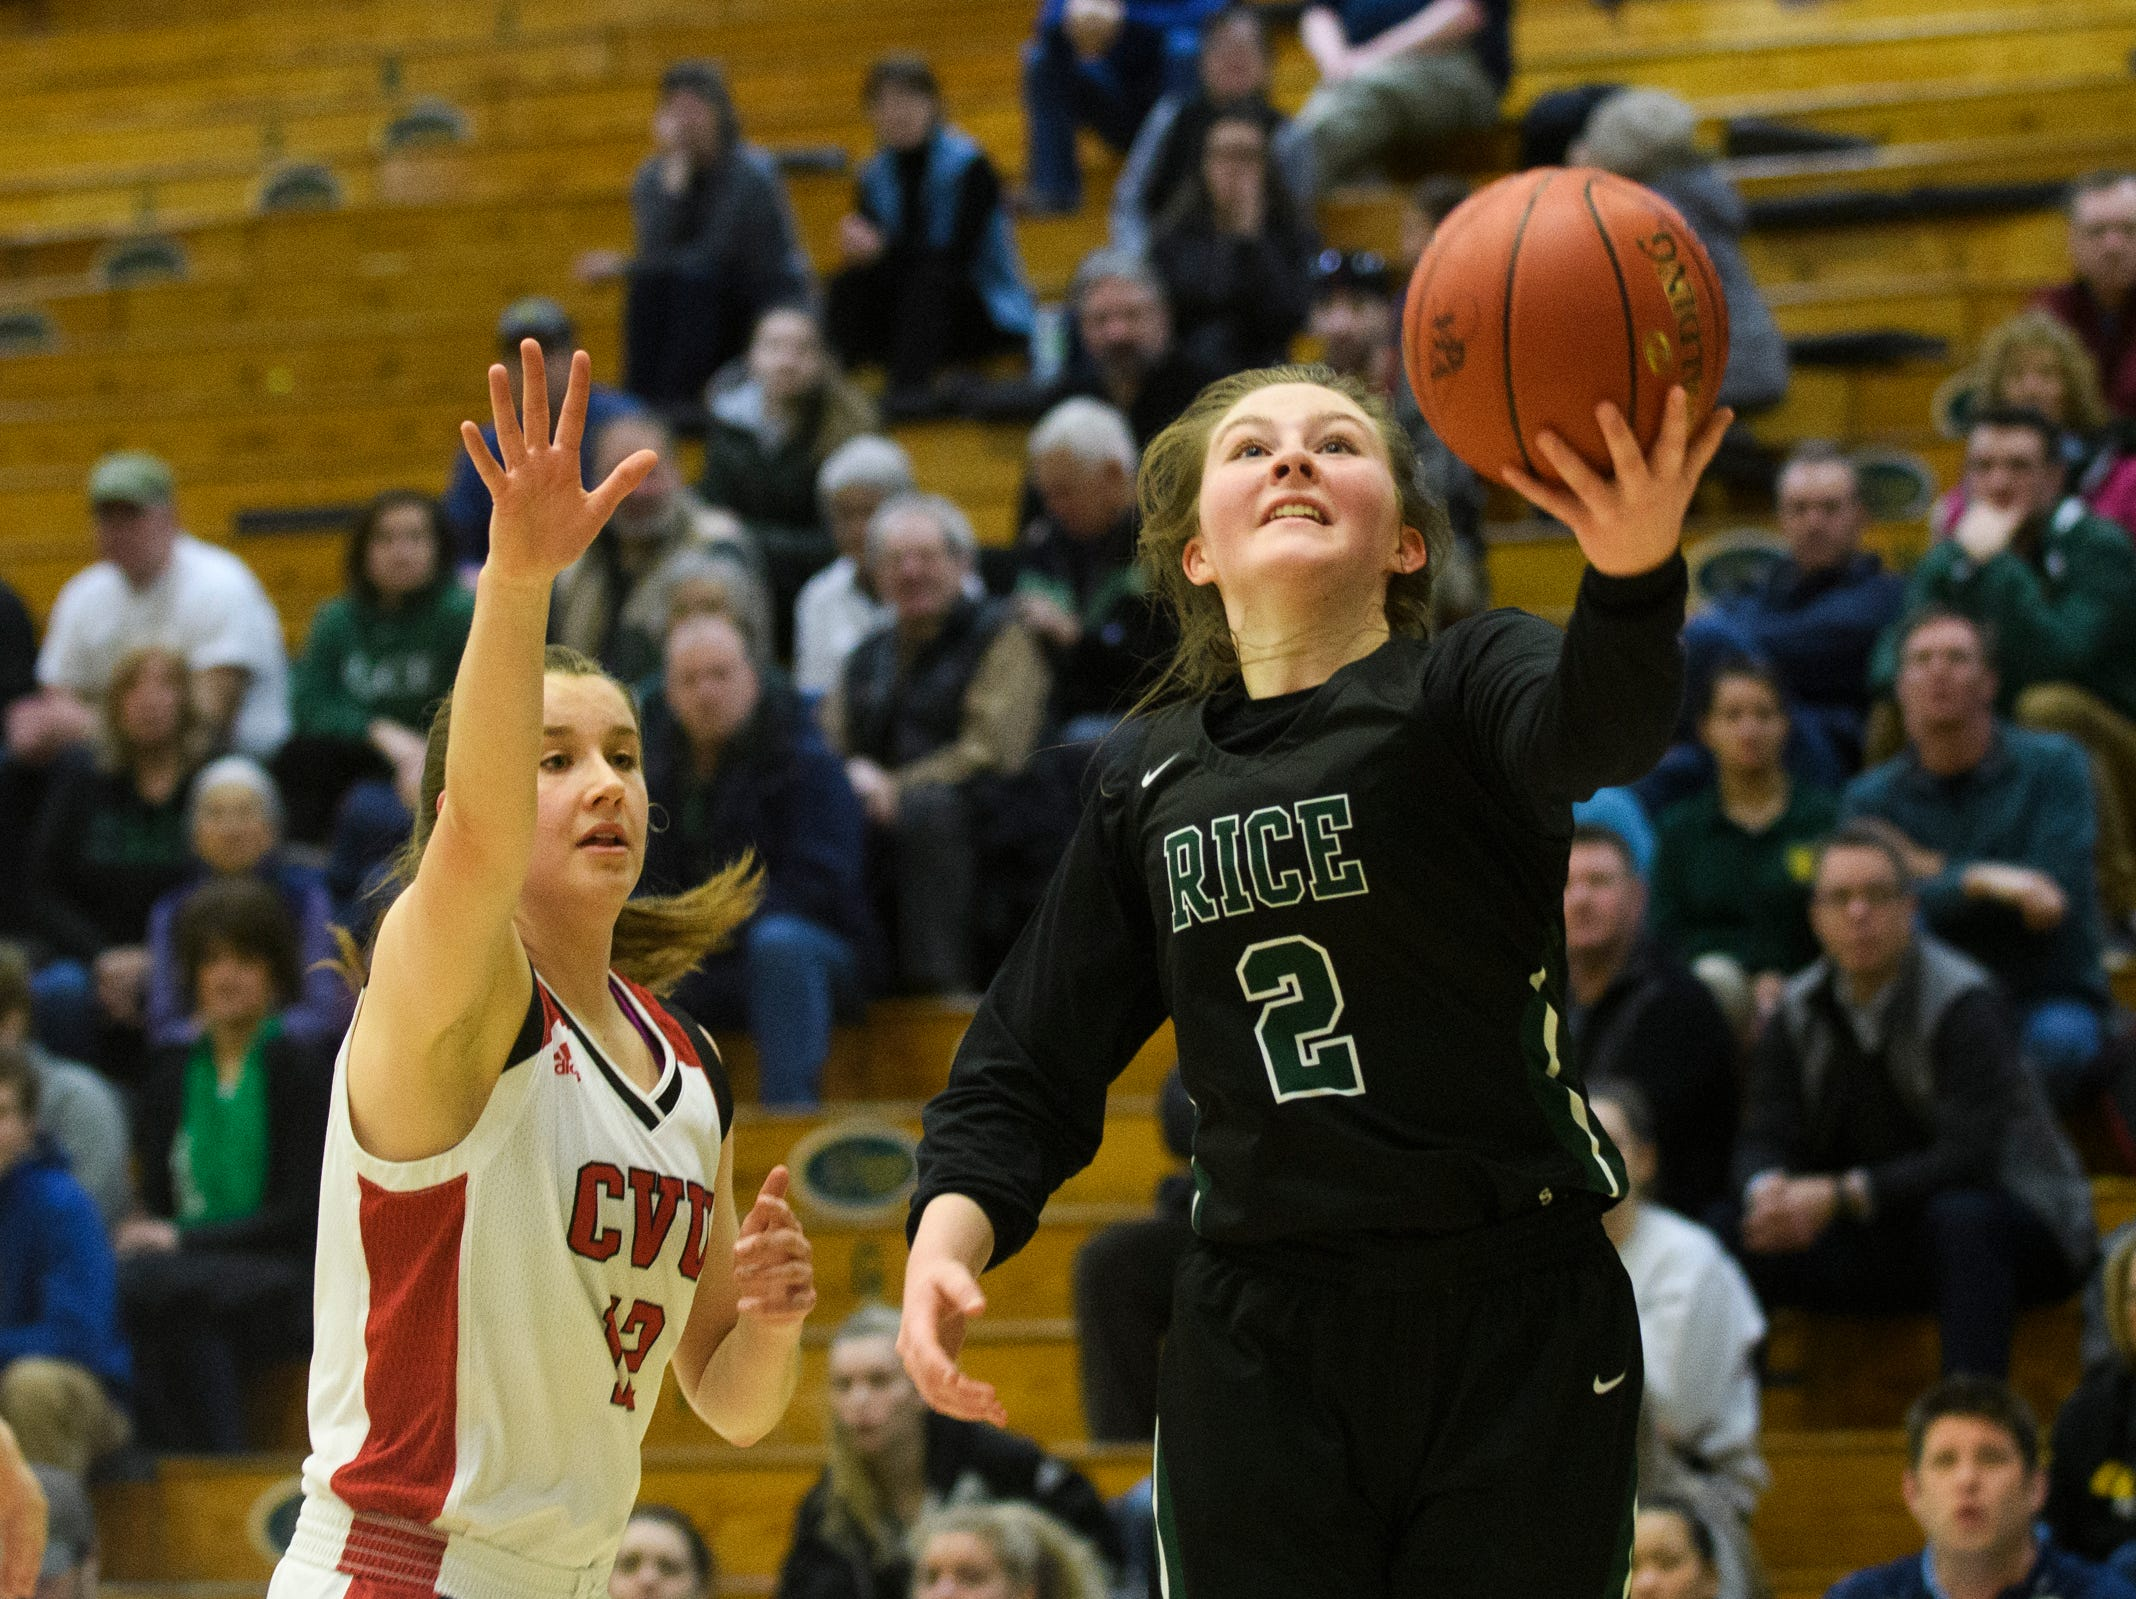 Rice's Fiona Connlooy (2) drives to the hoop during the girls semifinal basketball game between the Rice Green Knights and the Champlain Valley Union Redhawks at Patrick Gym on Wednesday nigh March 6, 2019 in Burlington, Vermont.